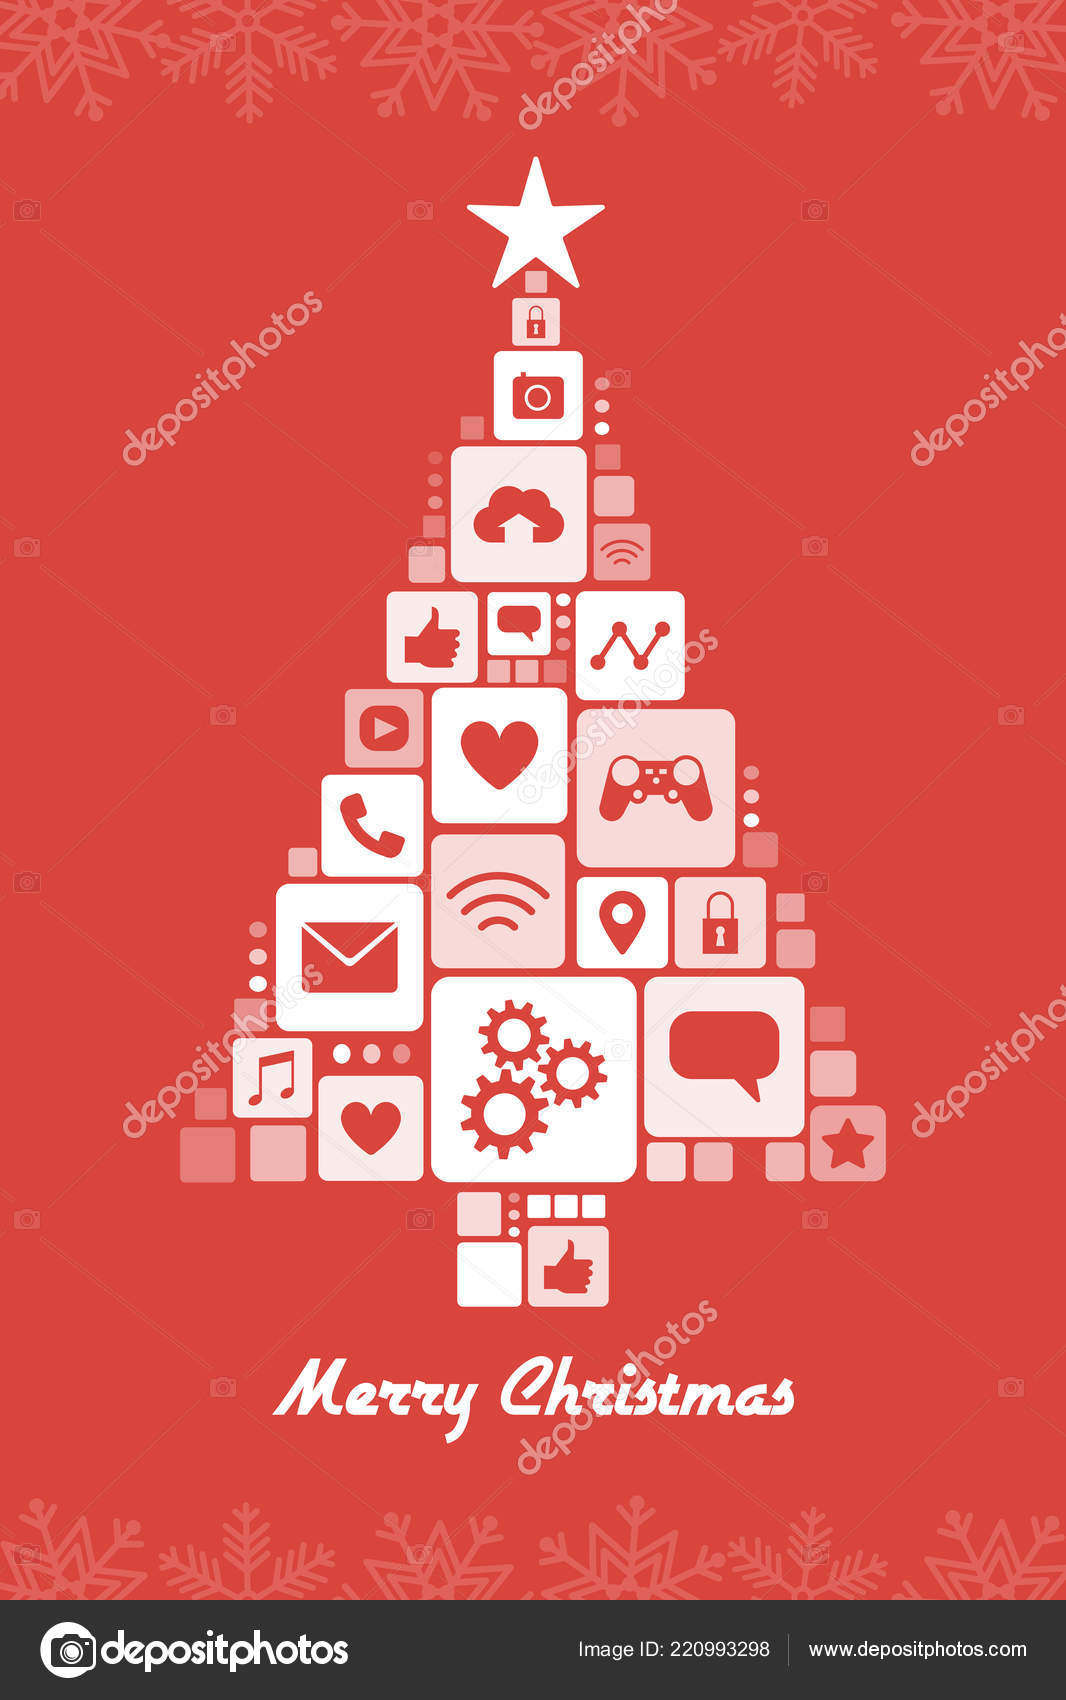 Christmas Tree Composed App Icons Internet Technology Celebration Concept — Stock Vector